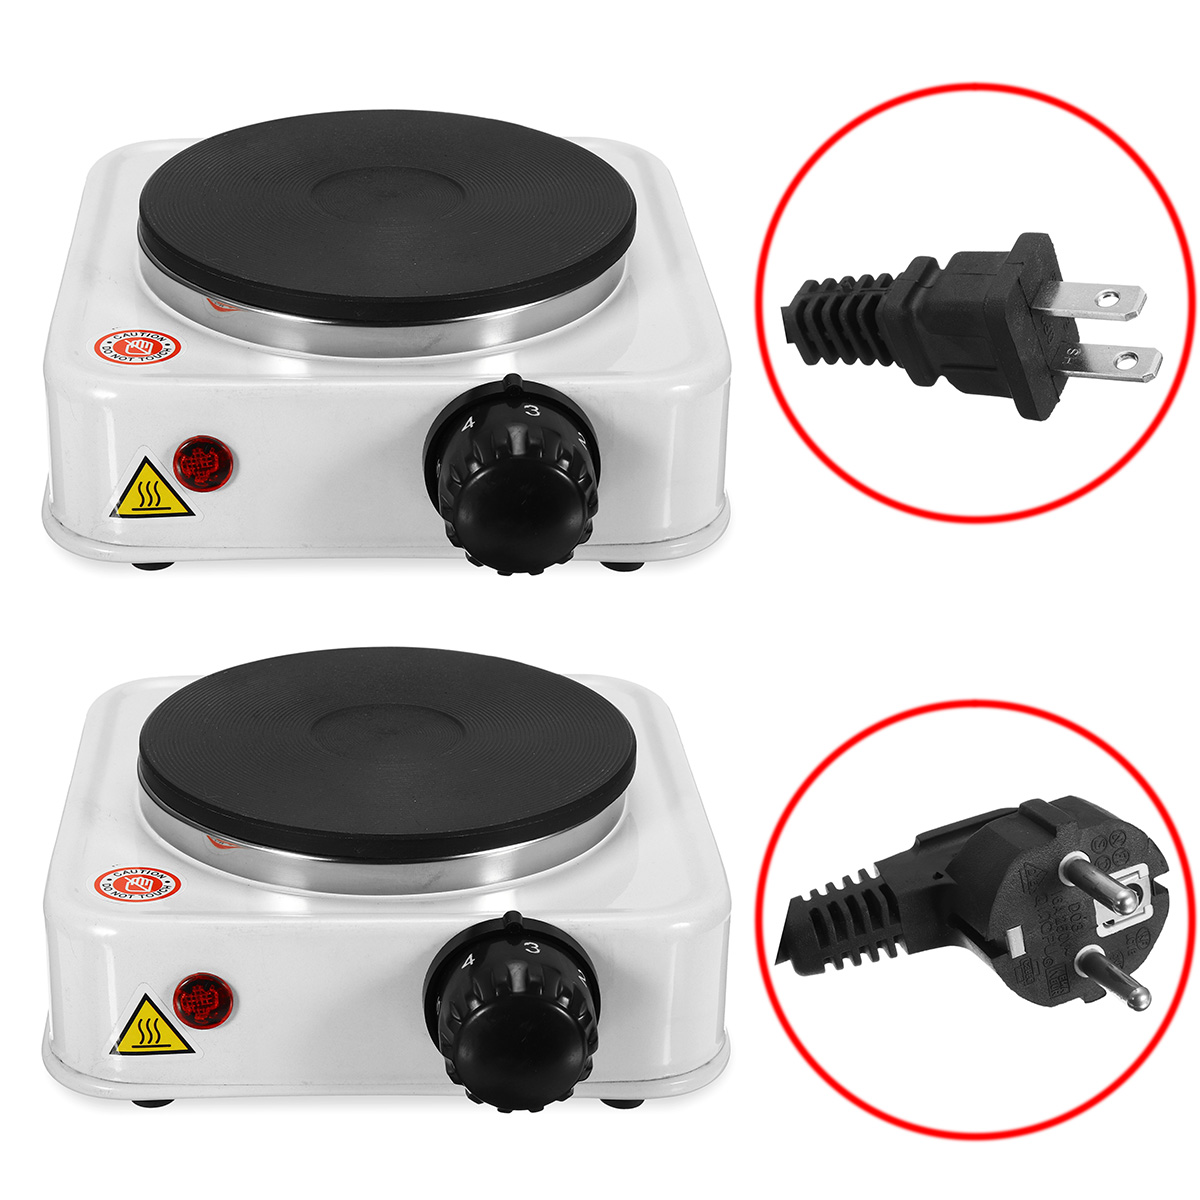 110VUS/220V EU Quick Sustained Heat 1000W Electric Burner Stove Eco-friendly Hot Plate Portable Kitchen Cooker Coffee Pot Heater цена